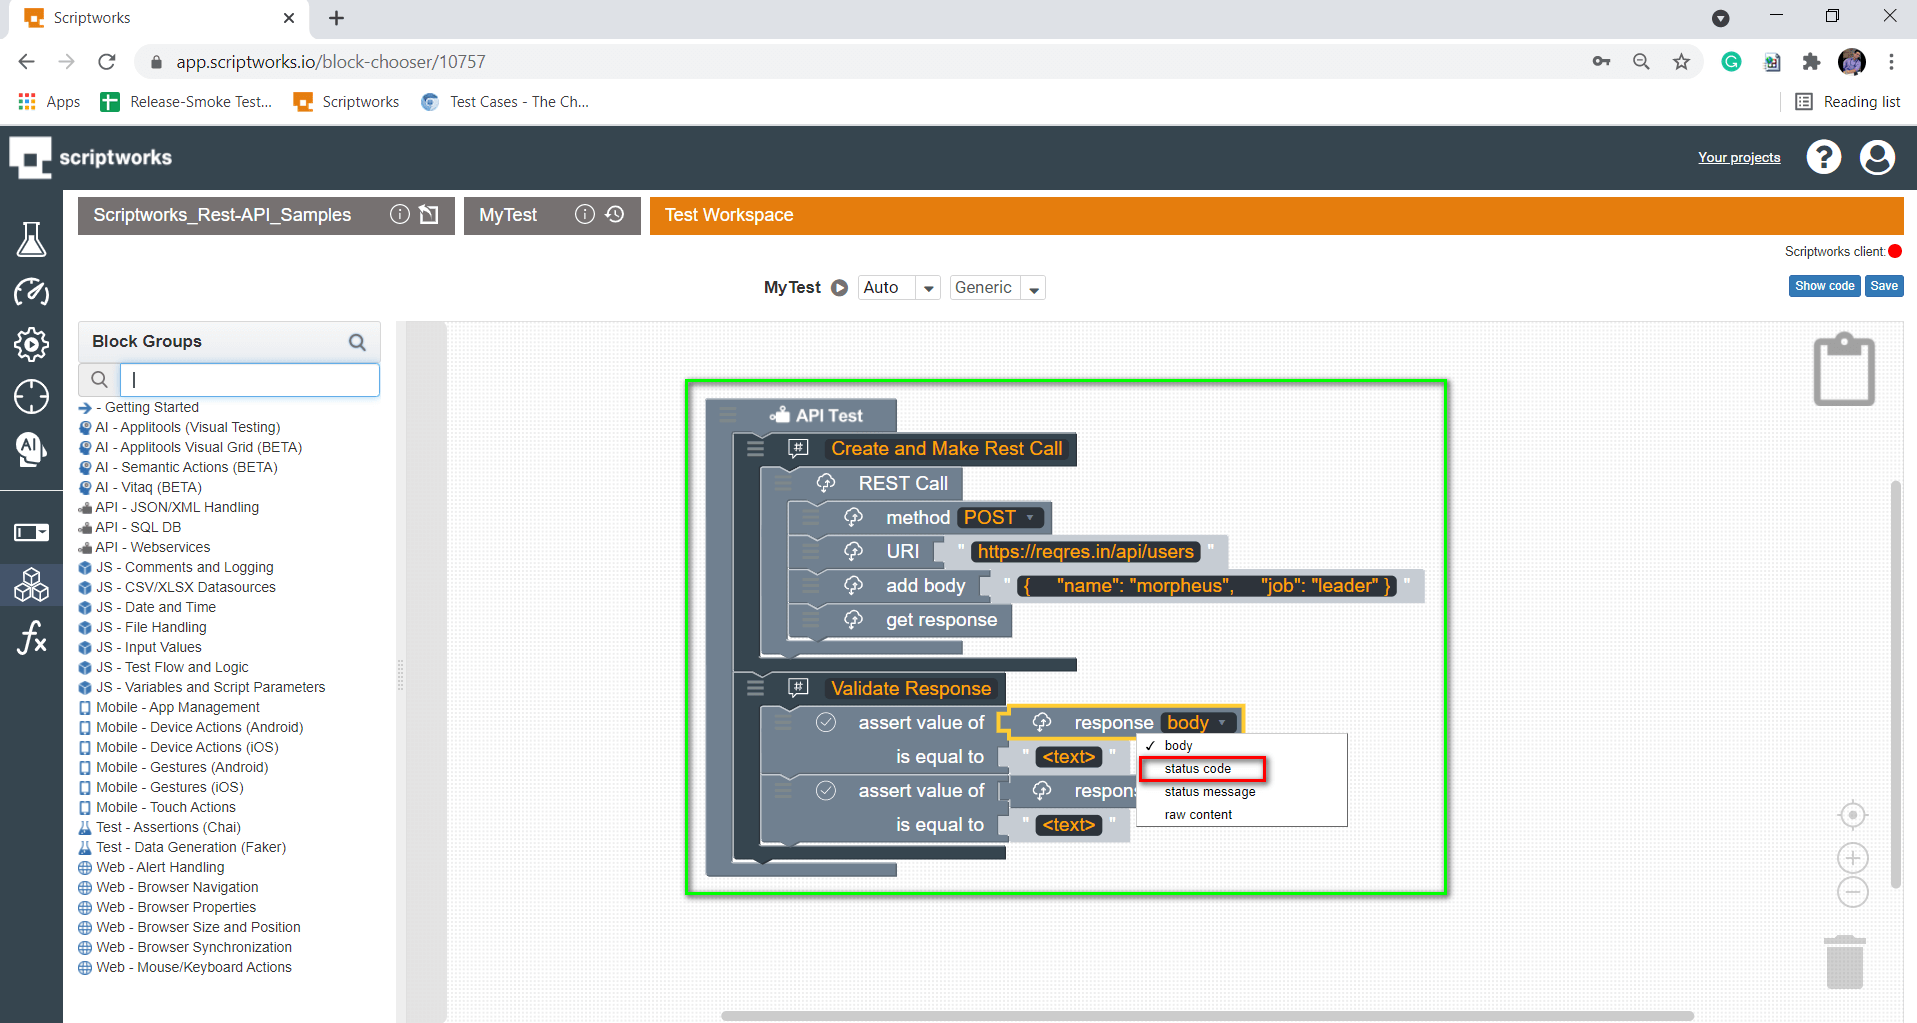 select status code from the dropdown